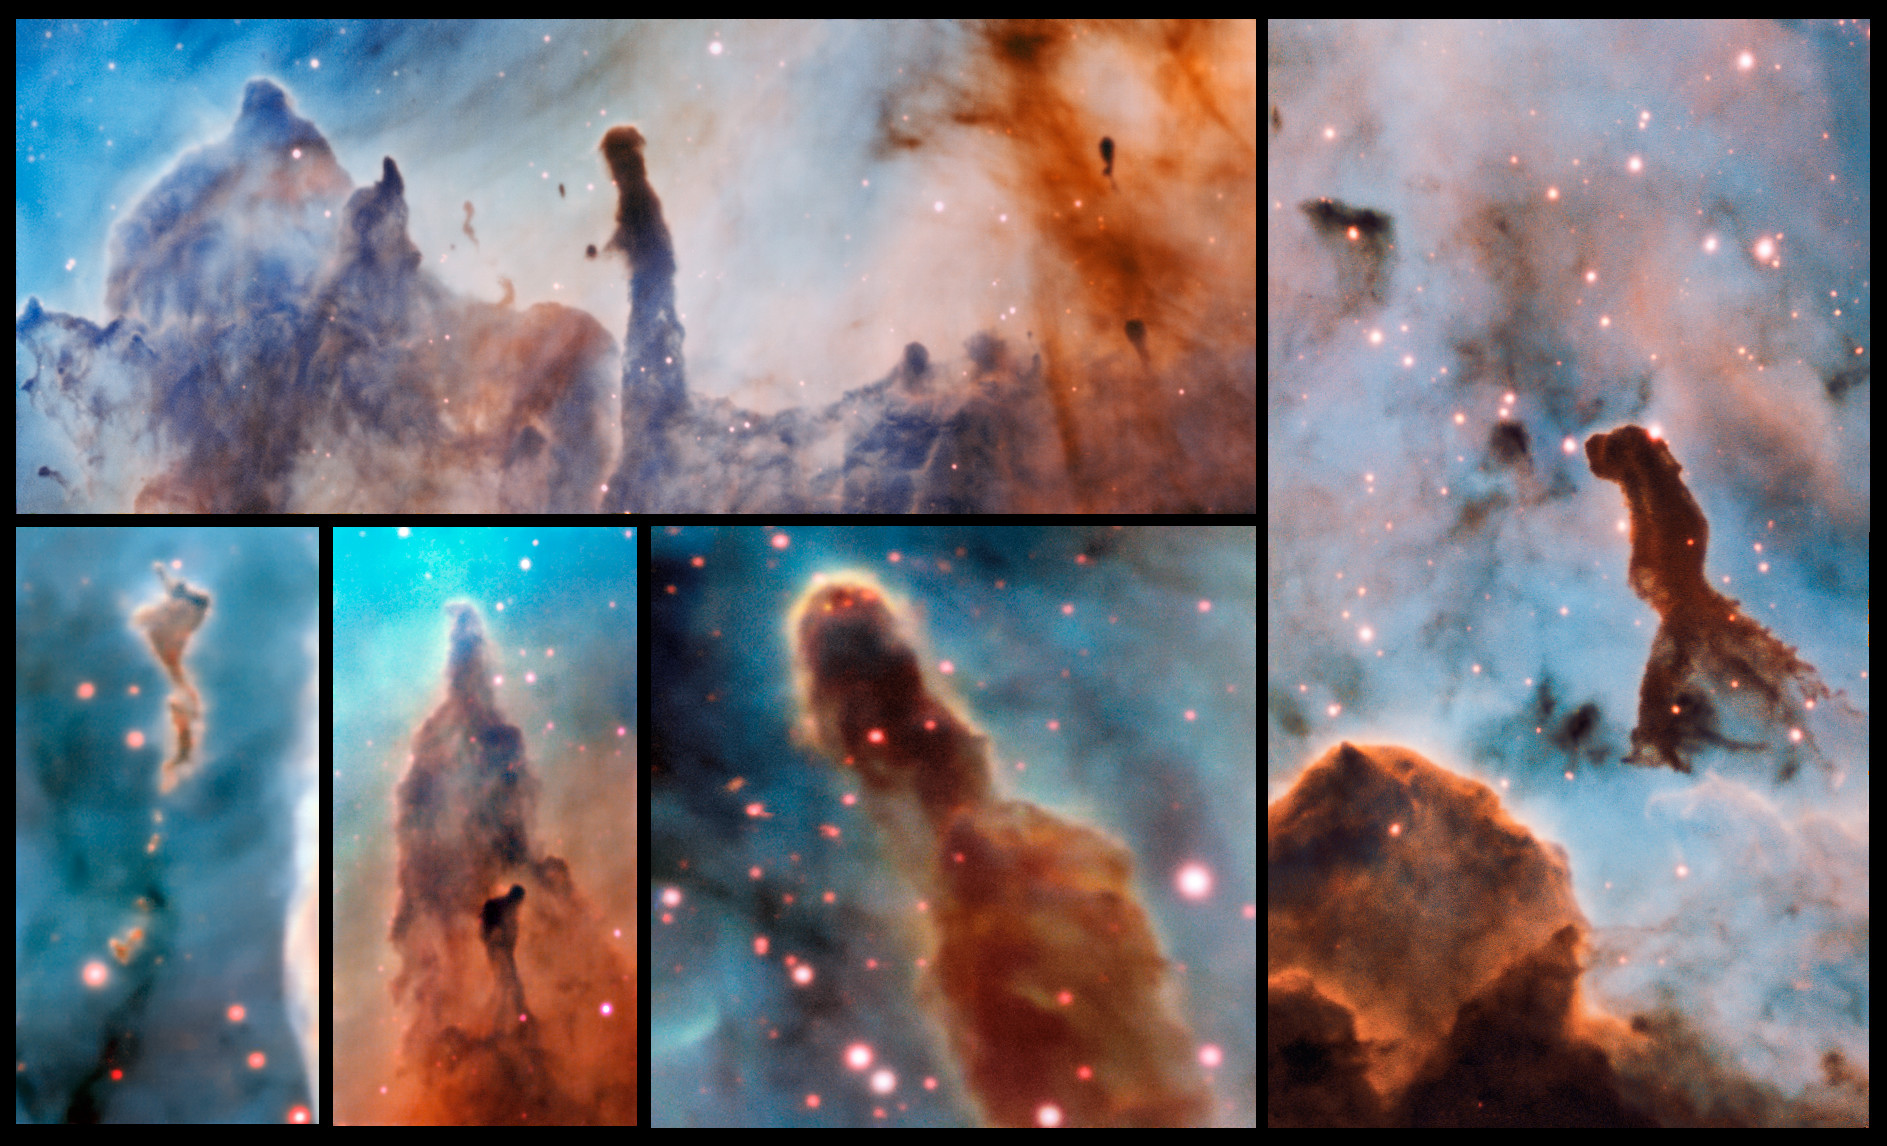 This composite image shows several pillars within the Carina Nebula which were observed and studied with the MUSE instrument, mounted on ESO's Very Large Telescope. The massive stars within the star formation region slowly destroy the pillars of dust and gas from which they are born. Click the picture for a larger version. Image credit: ESO/A. McLeod.